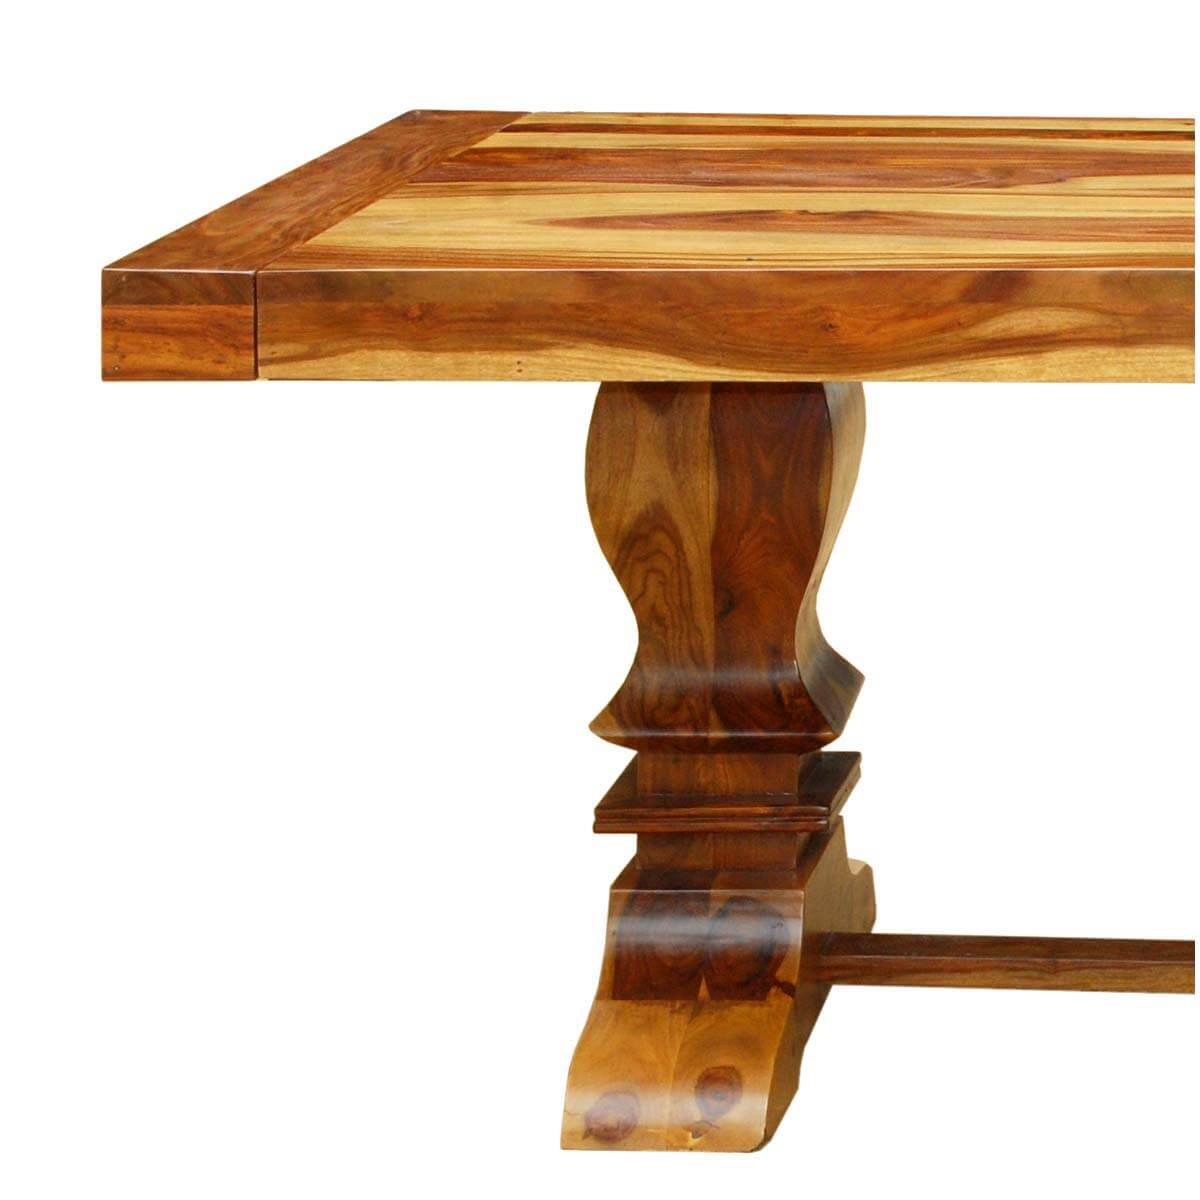 Double Pedestal Trestle Dining Table Table Ideas - Double pedestal trestle dining table